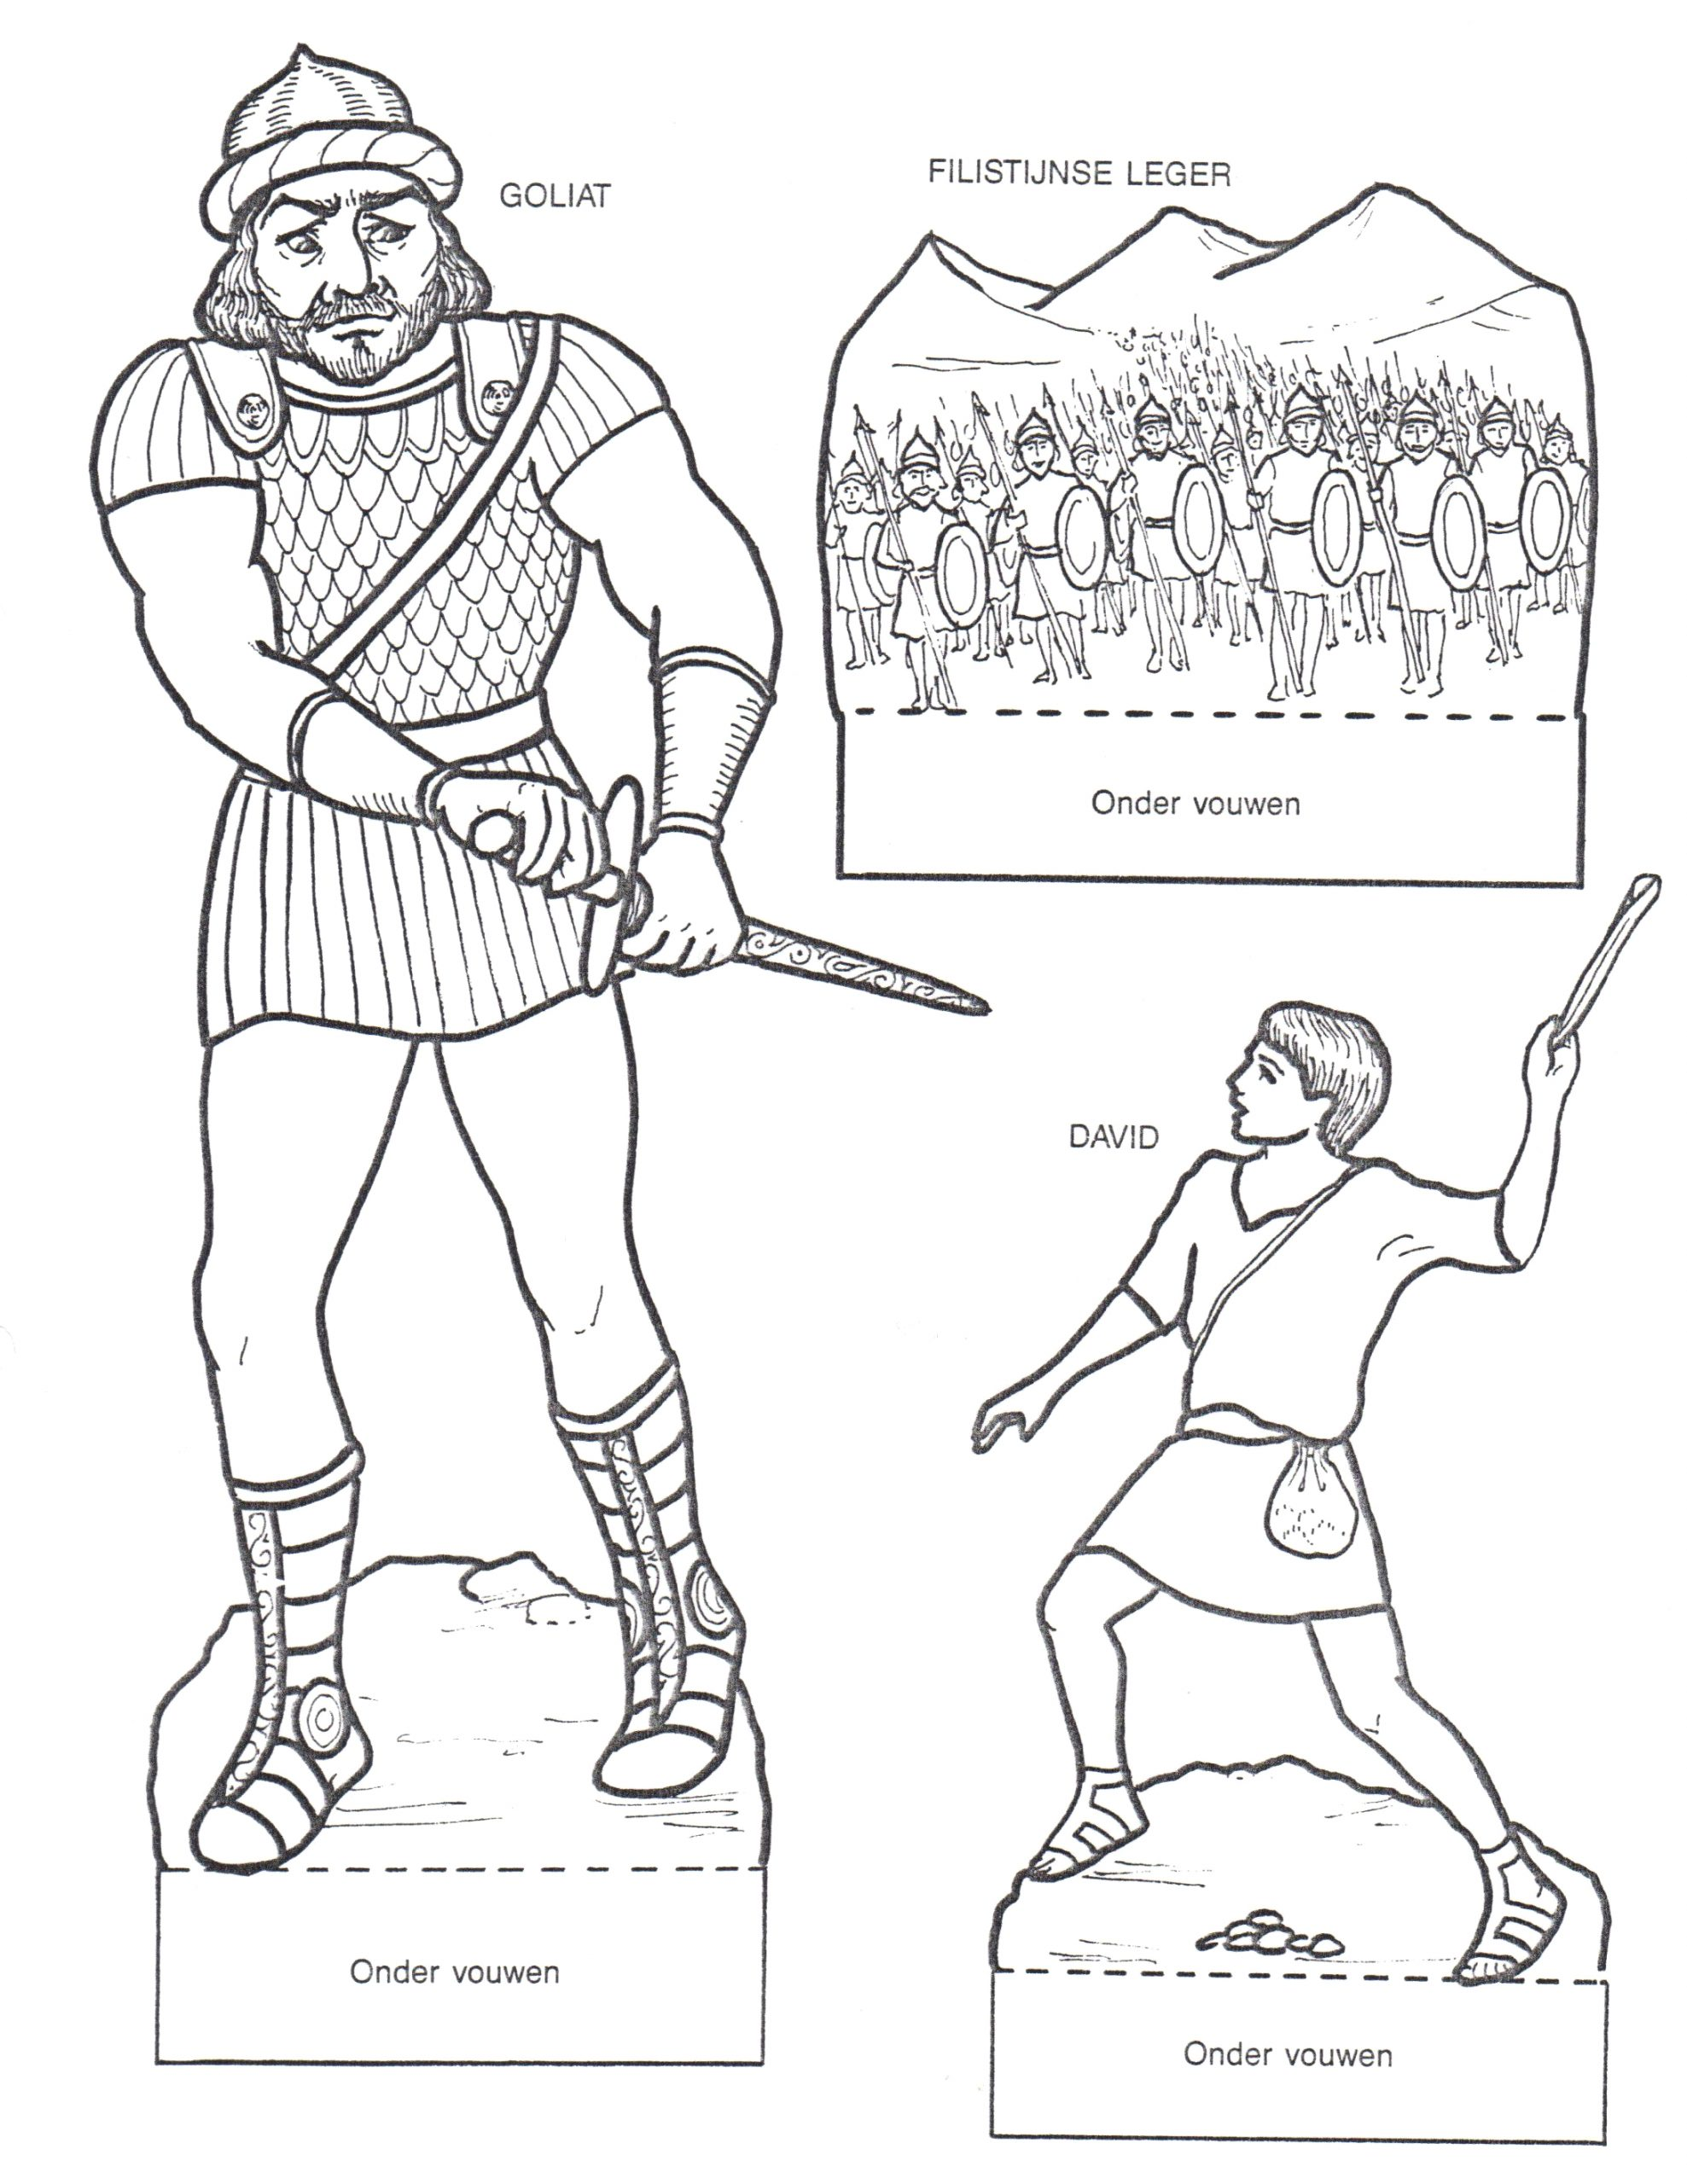 david and goliath coloring pages for